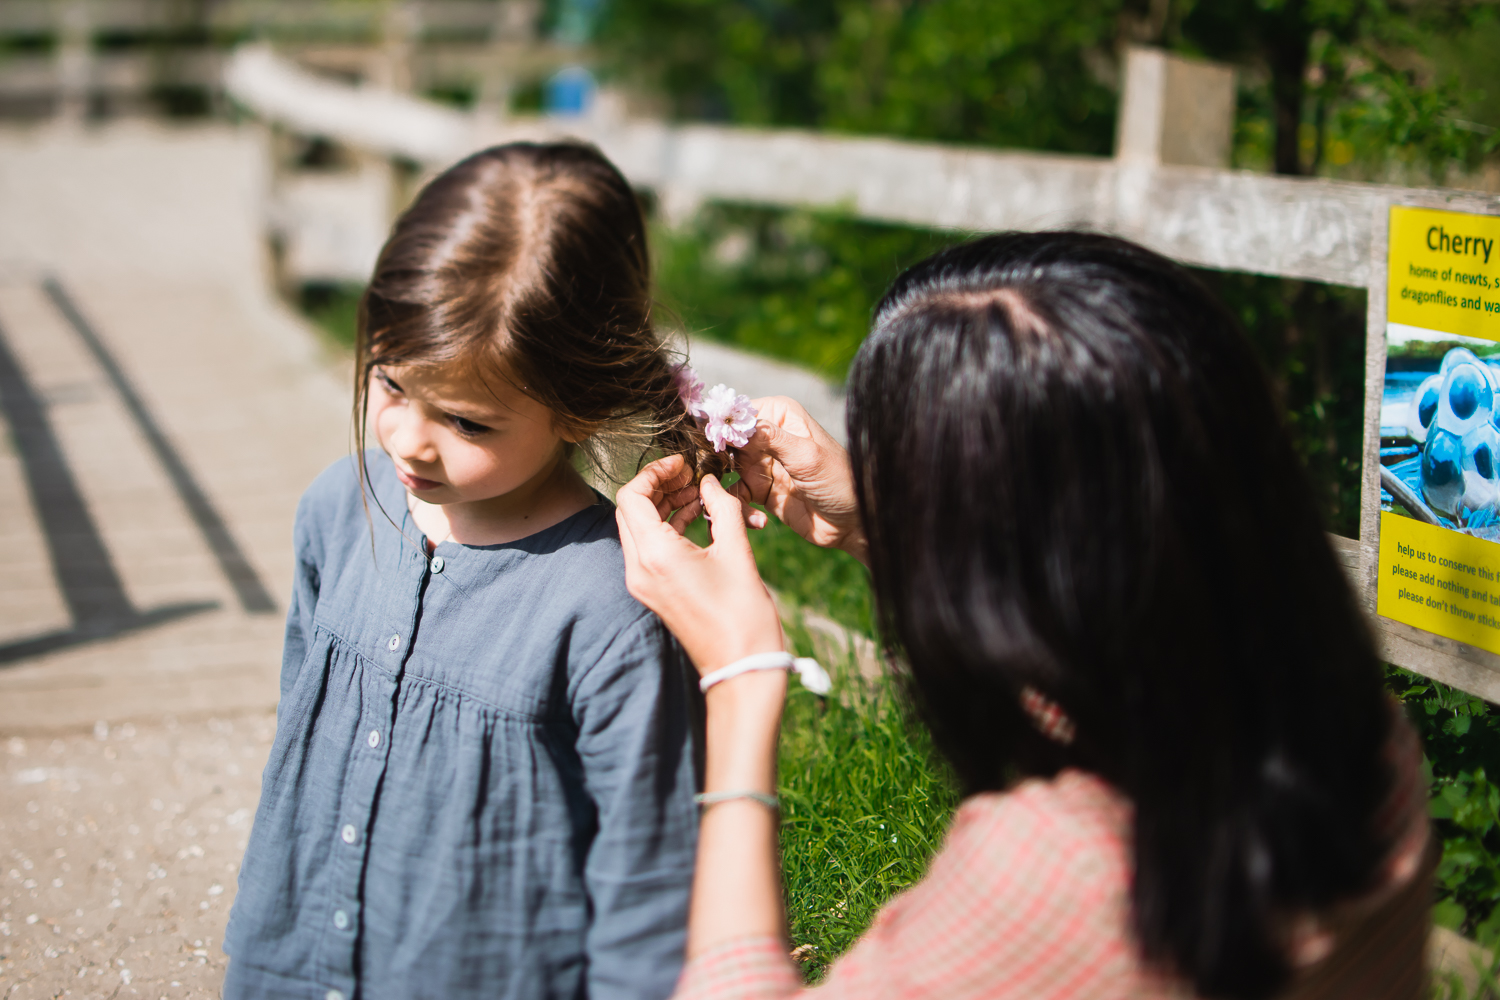 A mum putting a pink flower in her daughter's hair